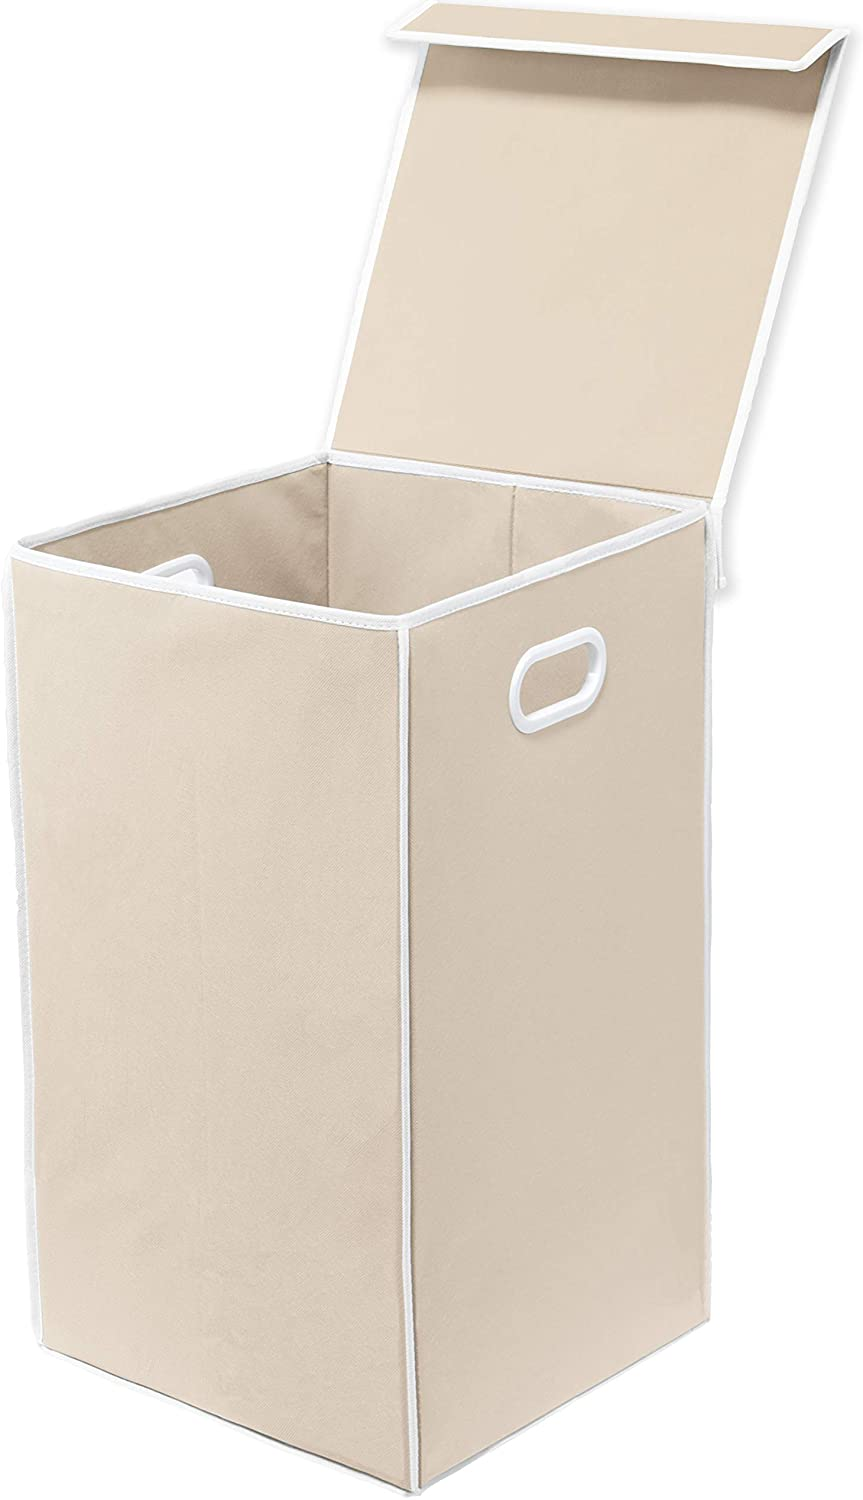 Simple Houseware Foldable Laundry Hamper Basket with Lid, Beige